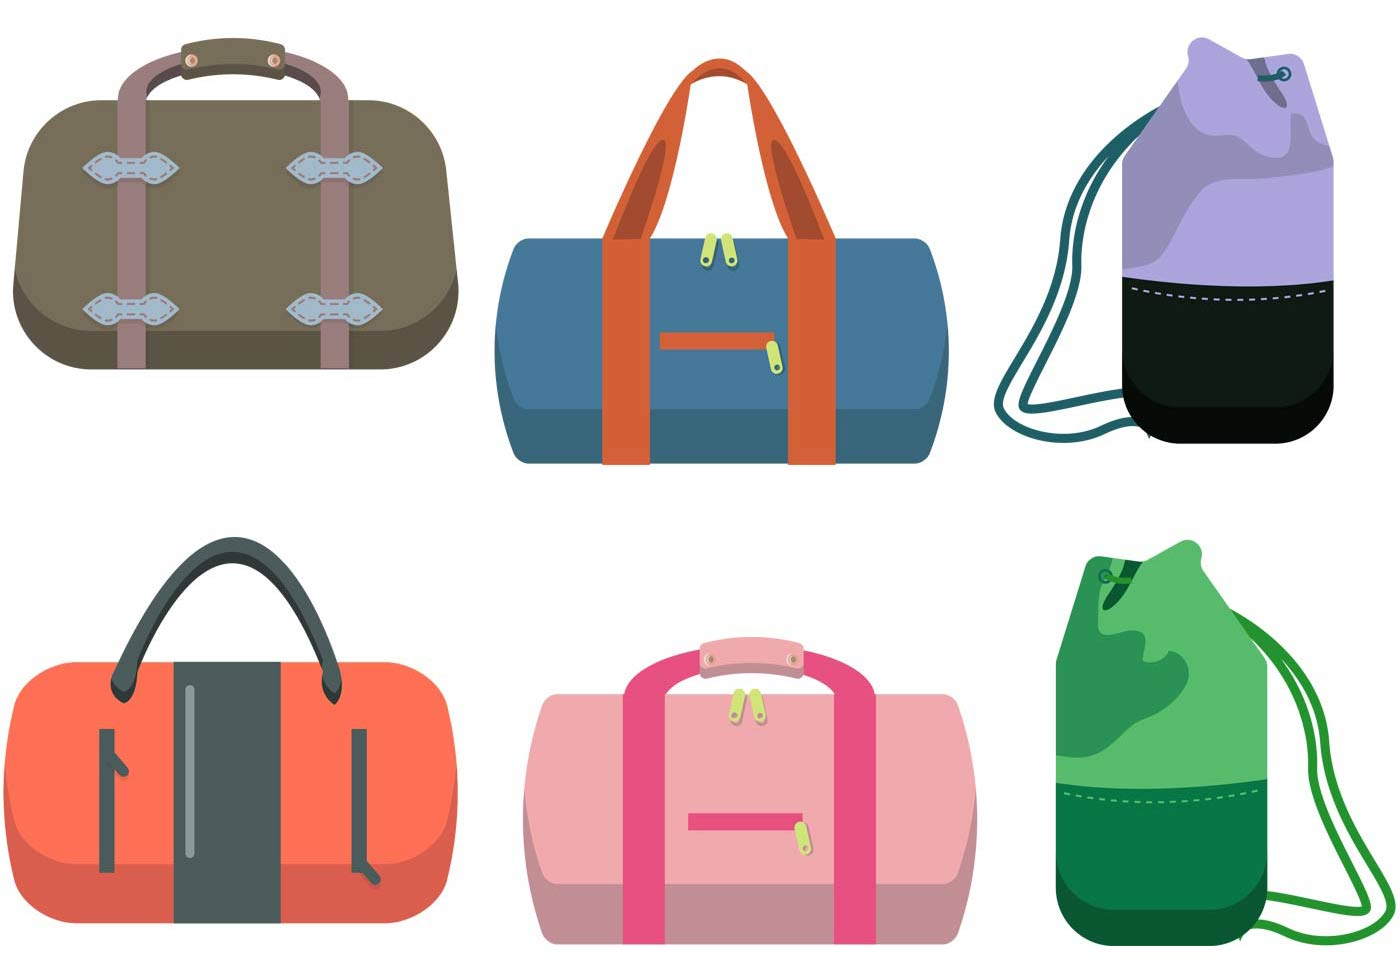 bag free vector art 2025 free downloads rh vecteezy com bag vector free bac vector has low copy number than plasmid